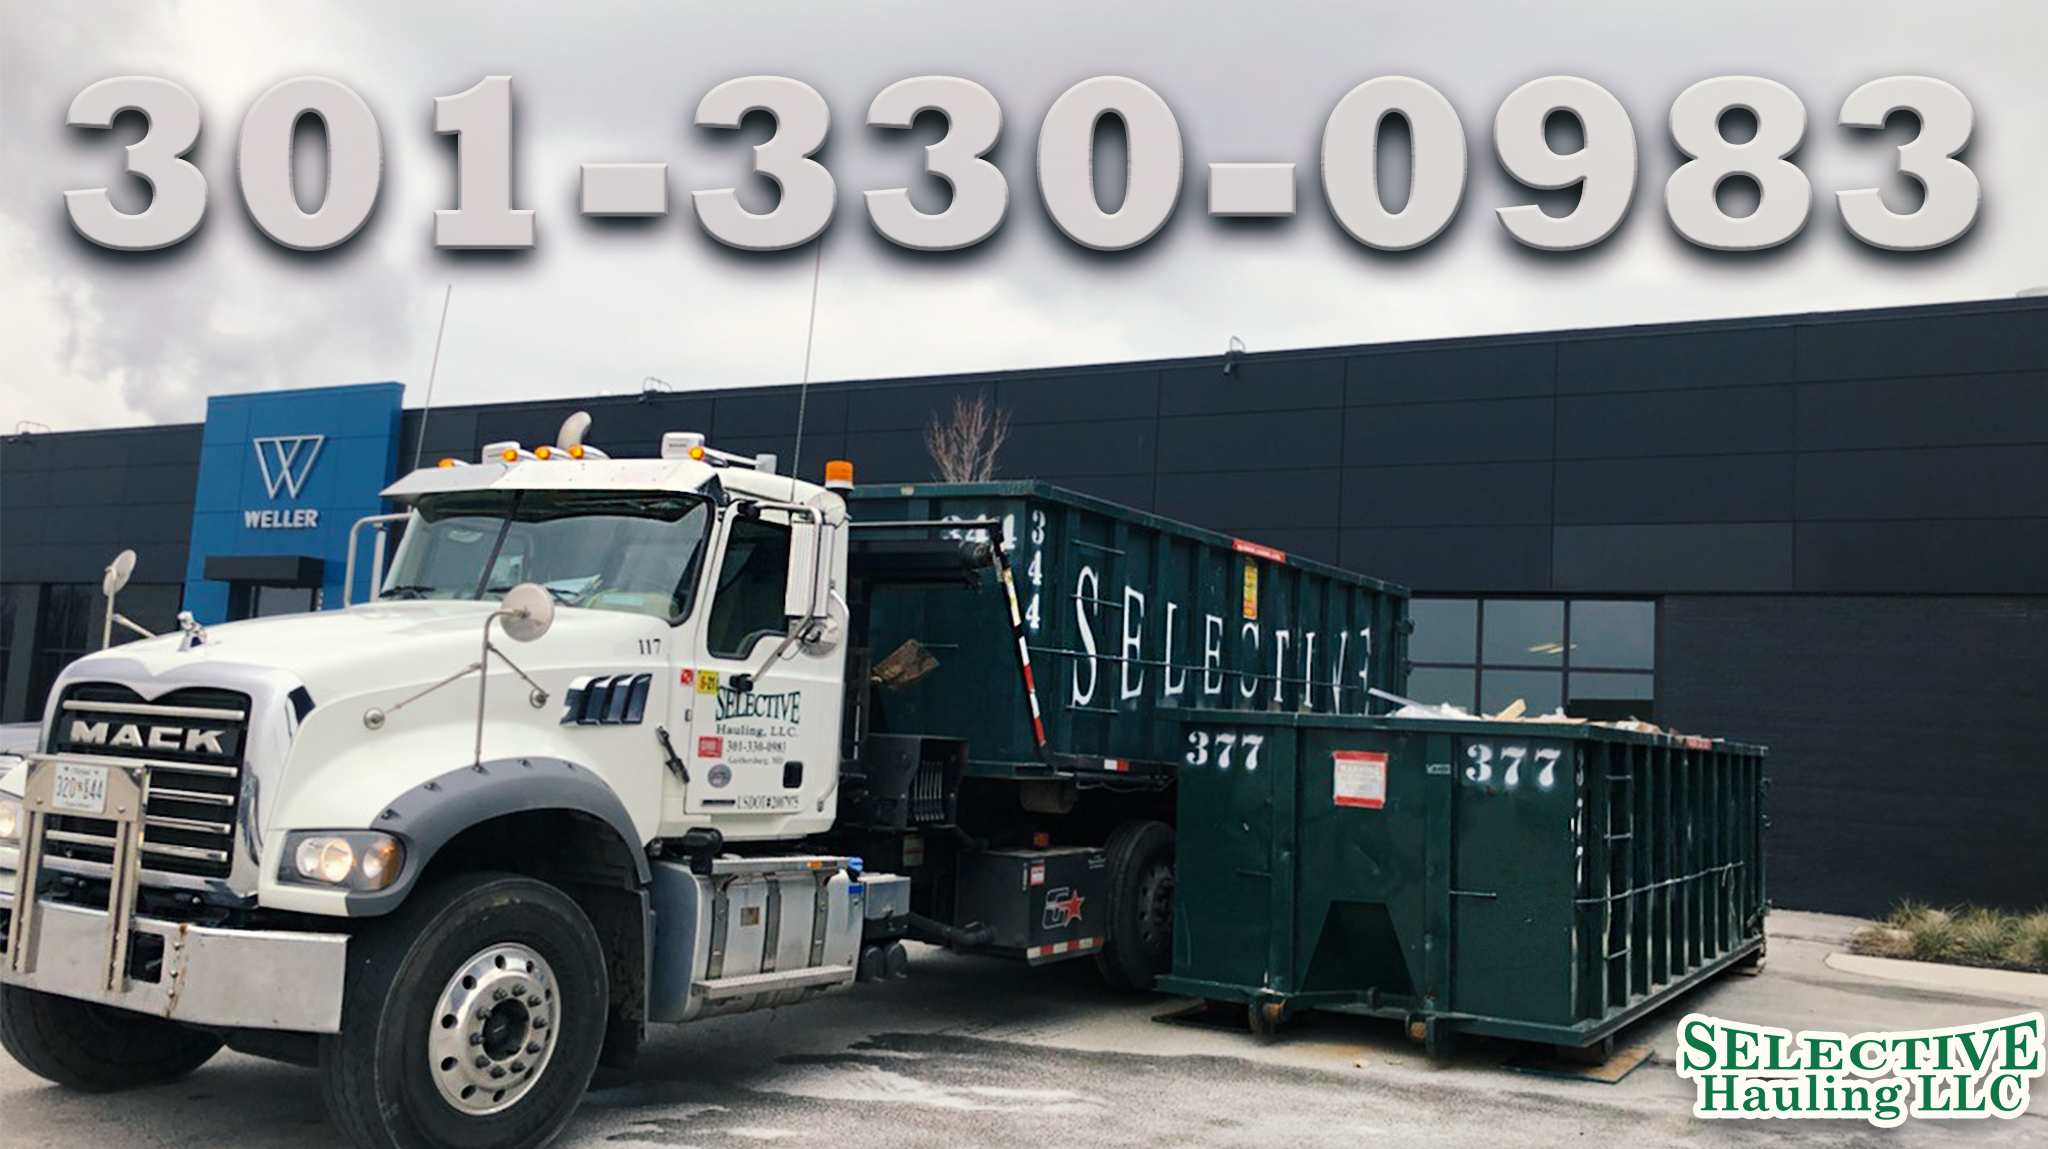 Montgomery County Maryland Dumpster Rental - Dumpster Rental Montgomery County Maryland